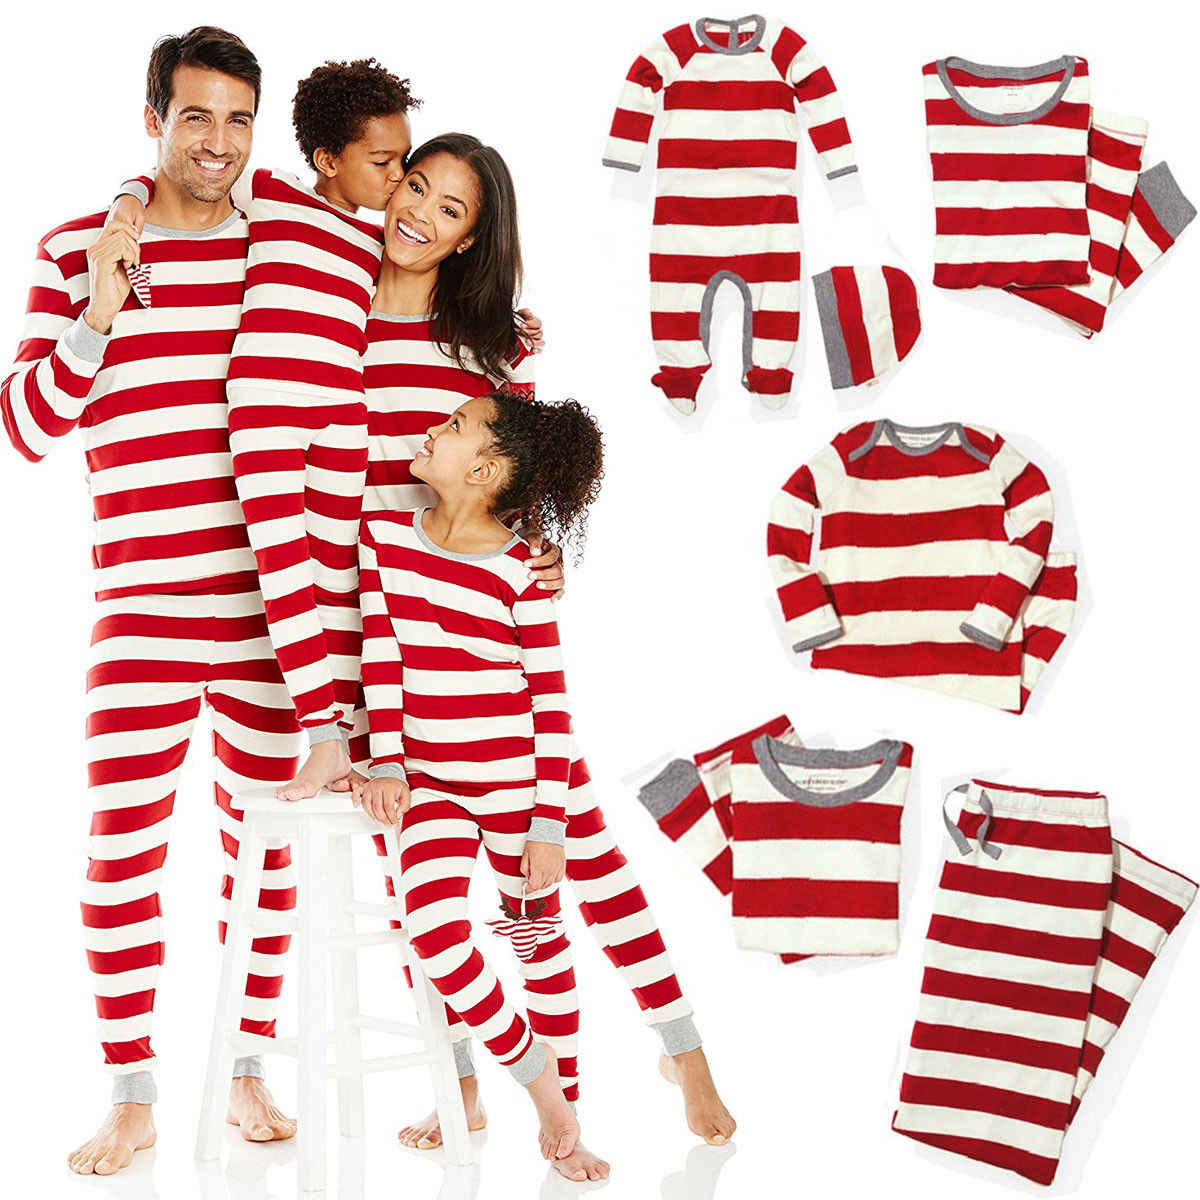 Xmas Striped Family Matching Outfits Set Christmas Family Pajamas Set Adult  Kid Sleepwear Nightwear Pjs Photgraphy d62c12afb